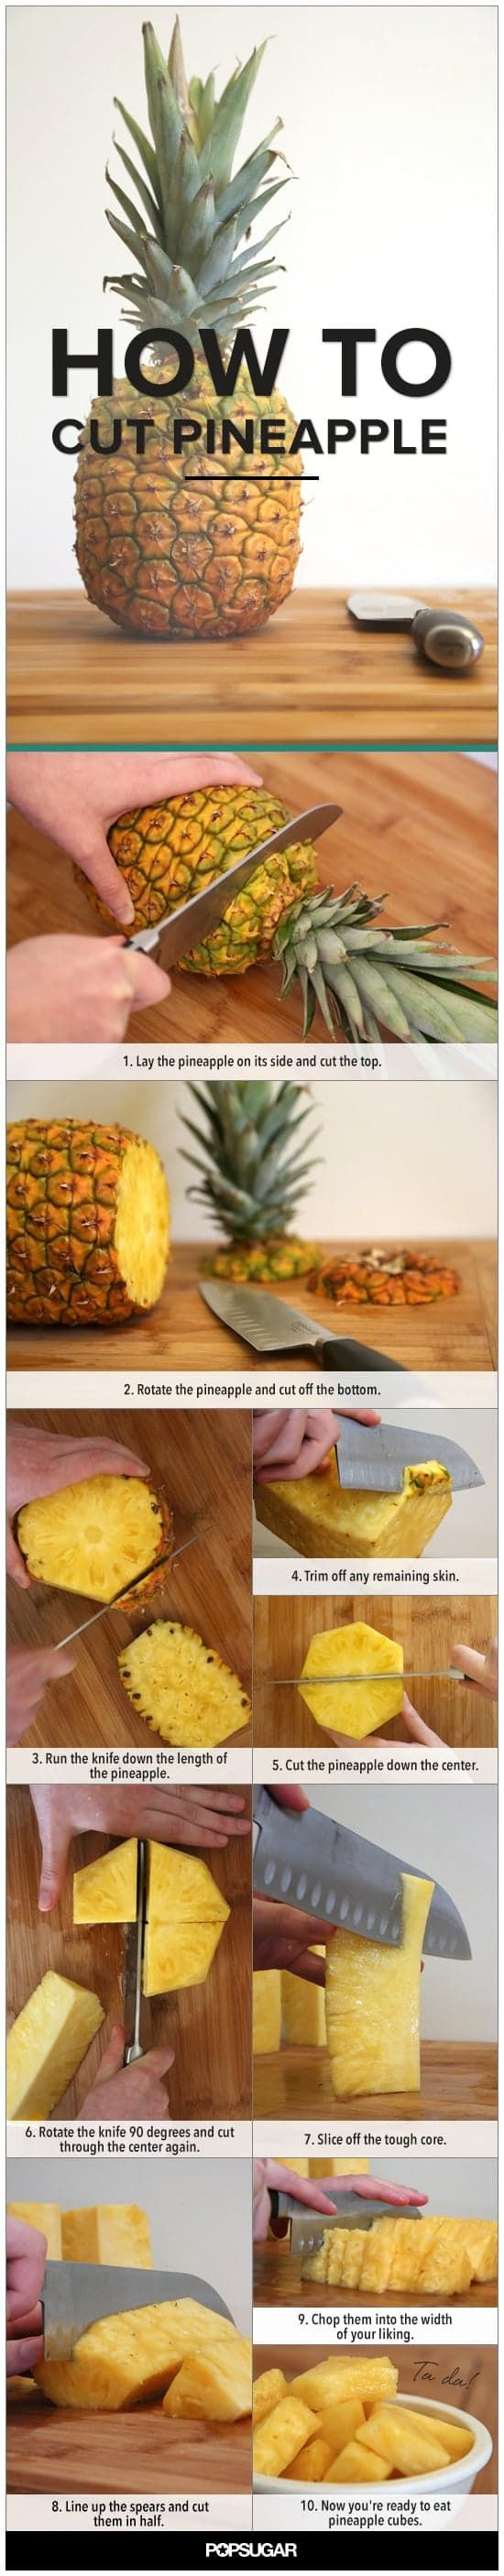 Learn to Cut Pineapple, in Pictures